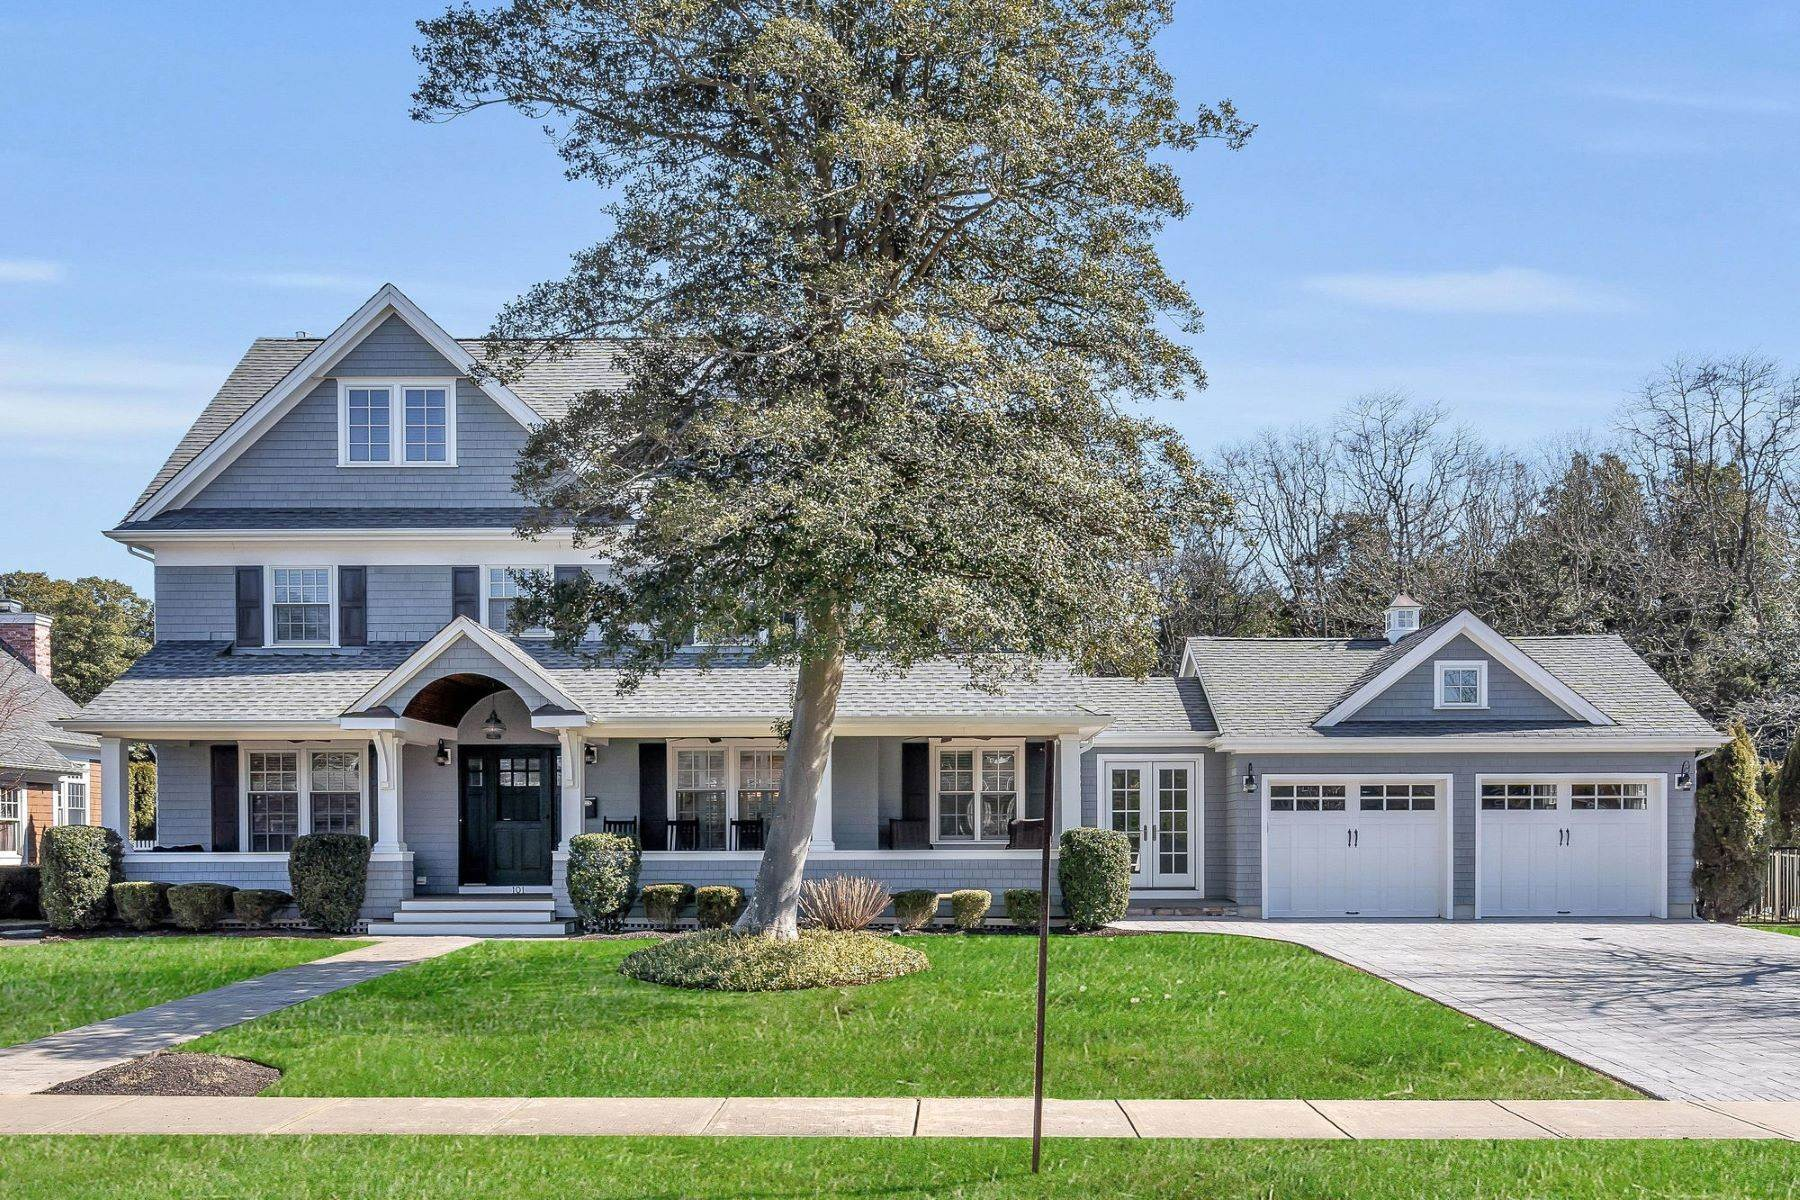 Single Family Homes for Sale at A Slice of Paradise 604 2nd Avenue Sea Girt, New Jersey 08750 United States